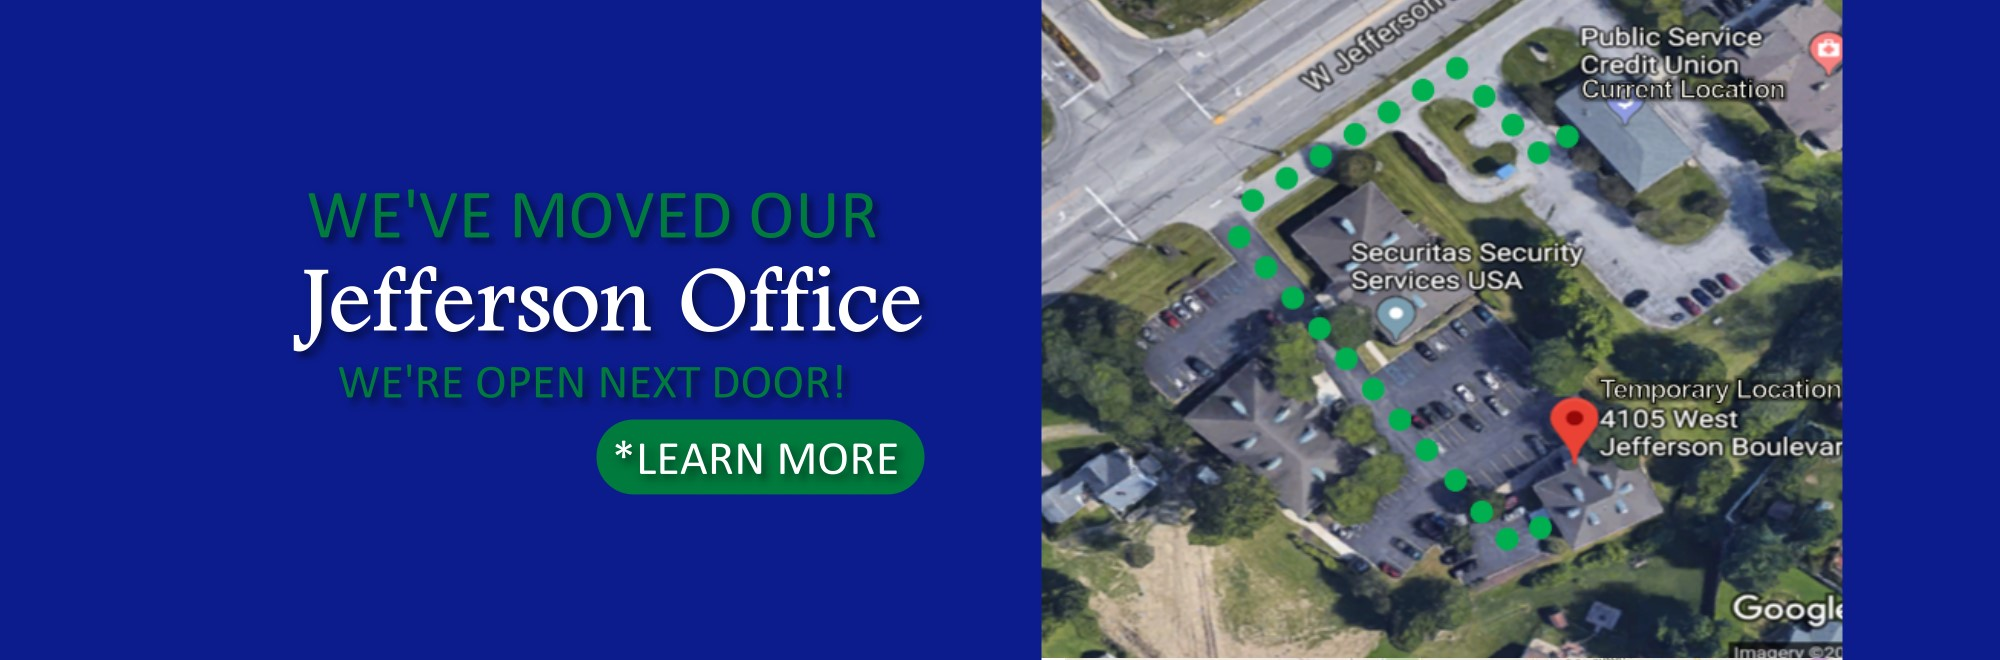 we've moved our jefferson office. we're open next door.